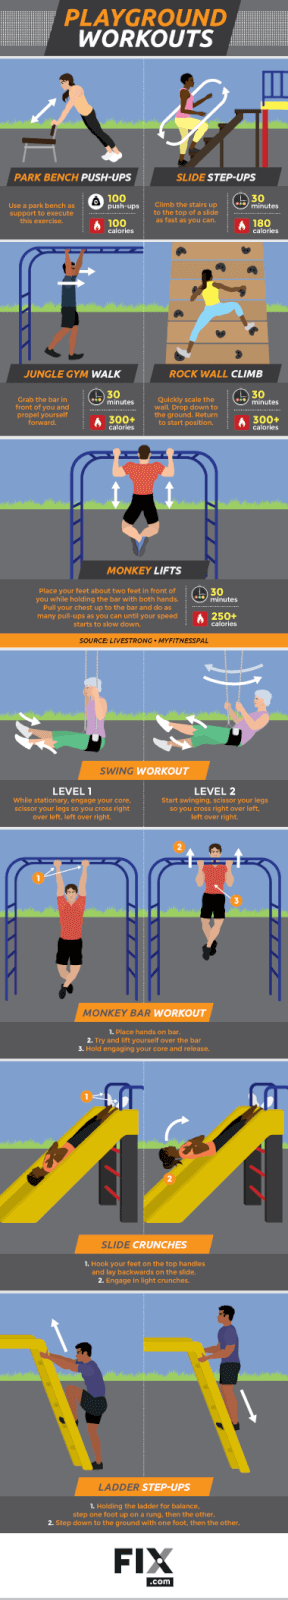 playground-workout-embed-small